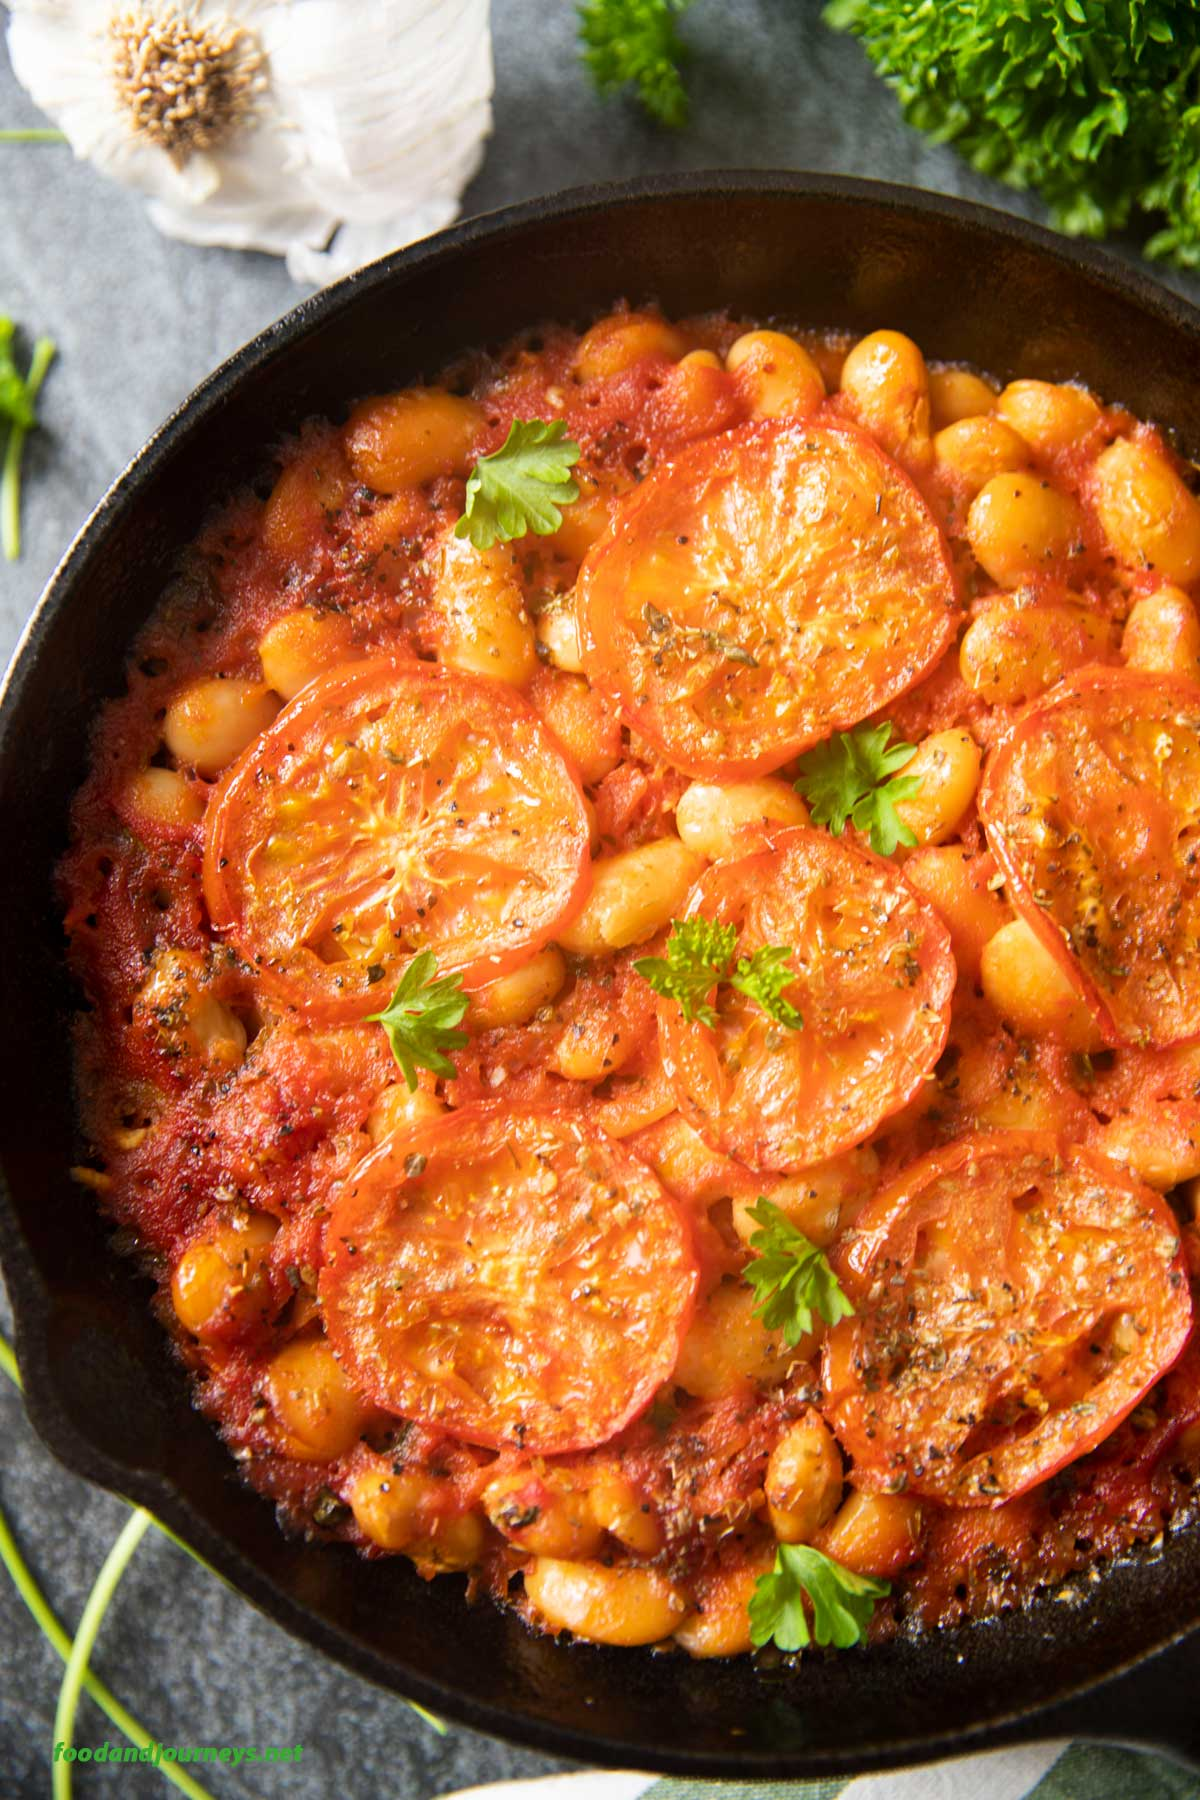 An overhead and closer shot of a pan of Beans in Tomato Sauce, highlighting the baked slices of tomatoes on top.